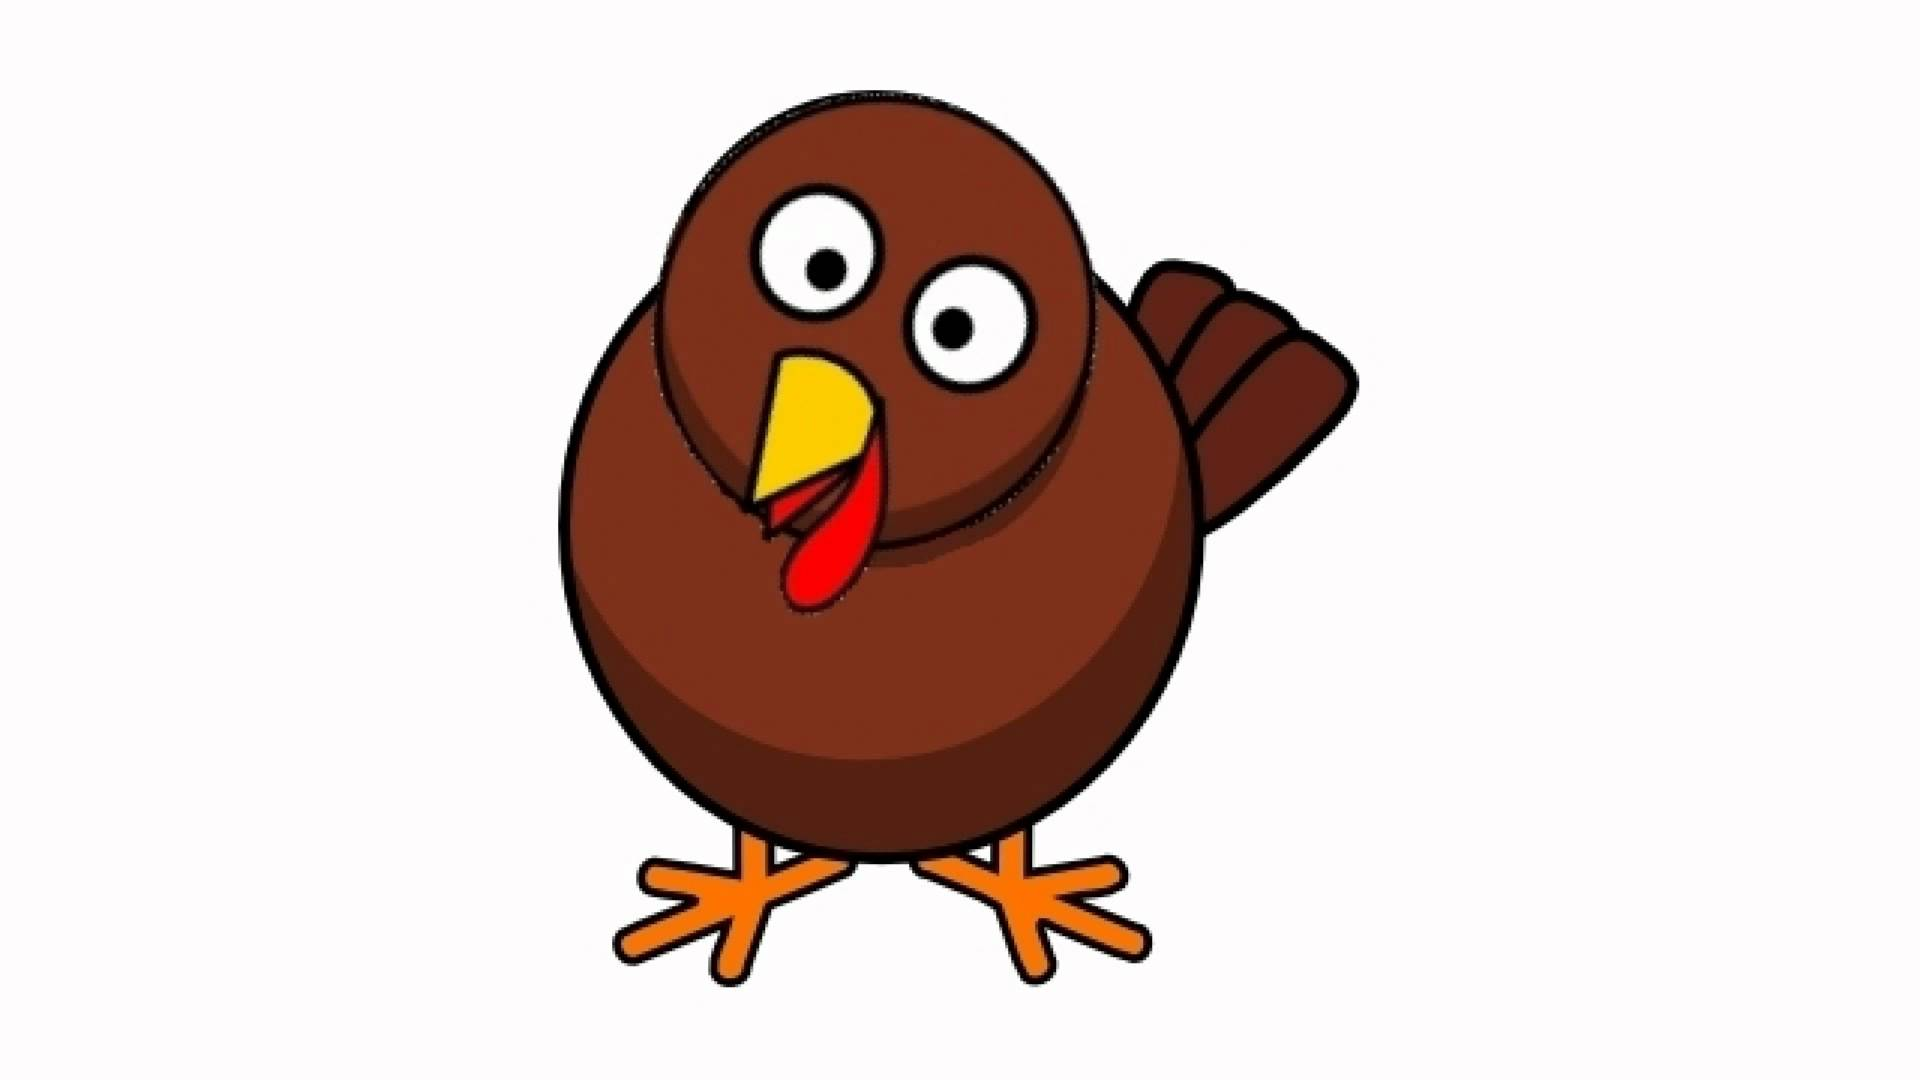 Noise clipart funny bird  gobble sound effect YouTube